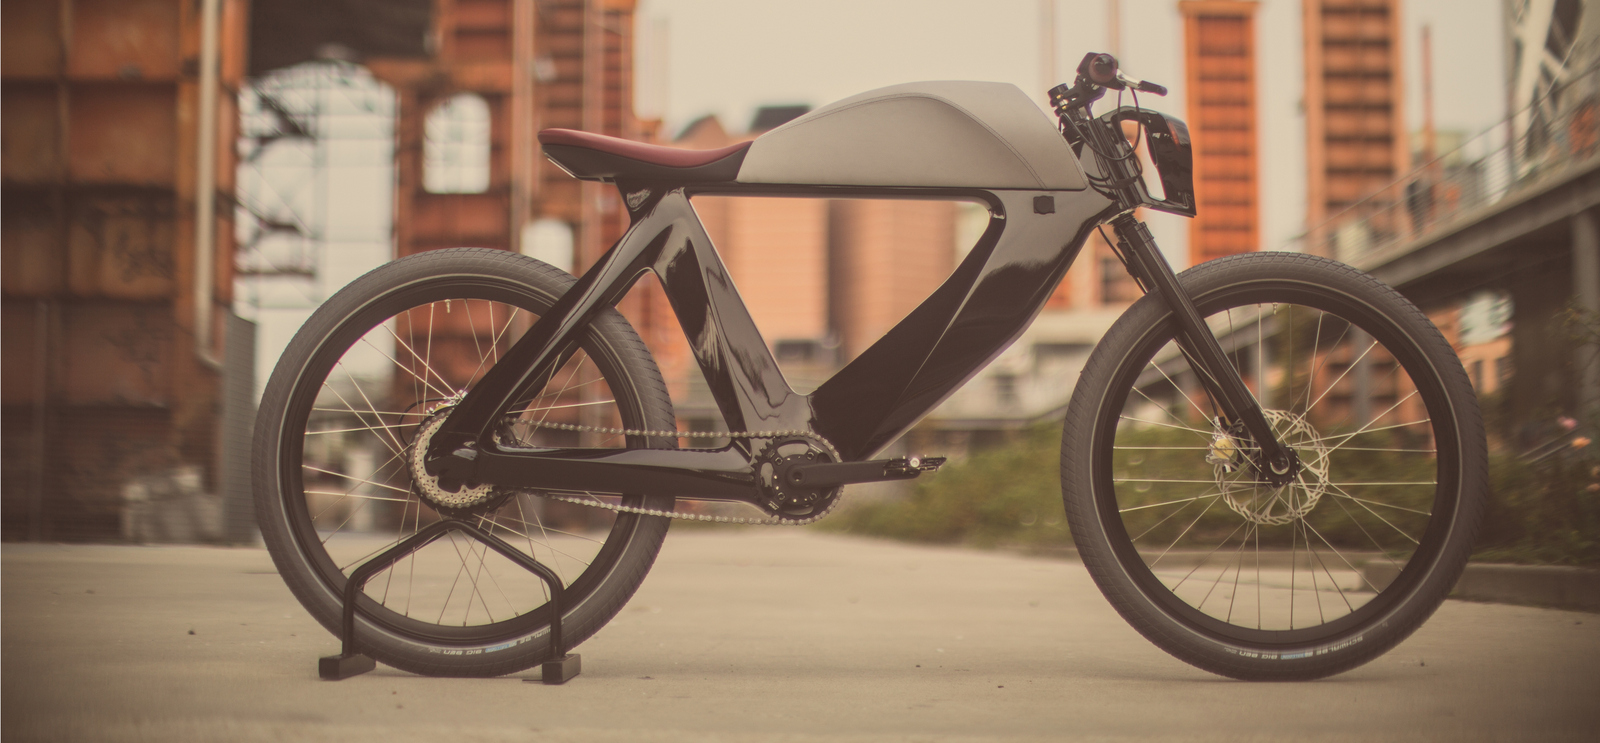 Bicicletto®, Italy's Coolest Bike, Now with a 3D-Printed Makeover